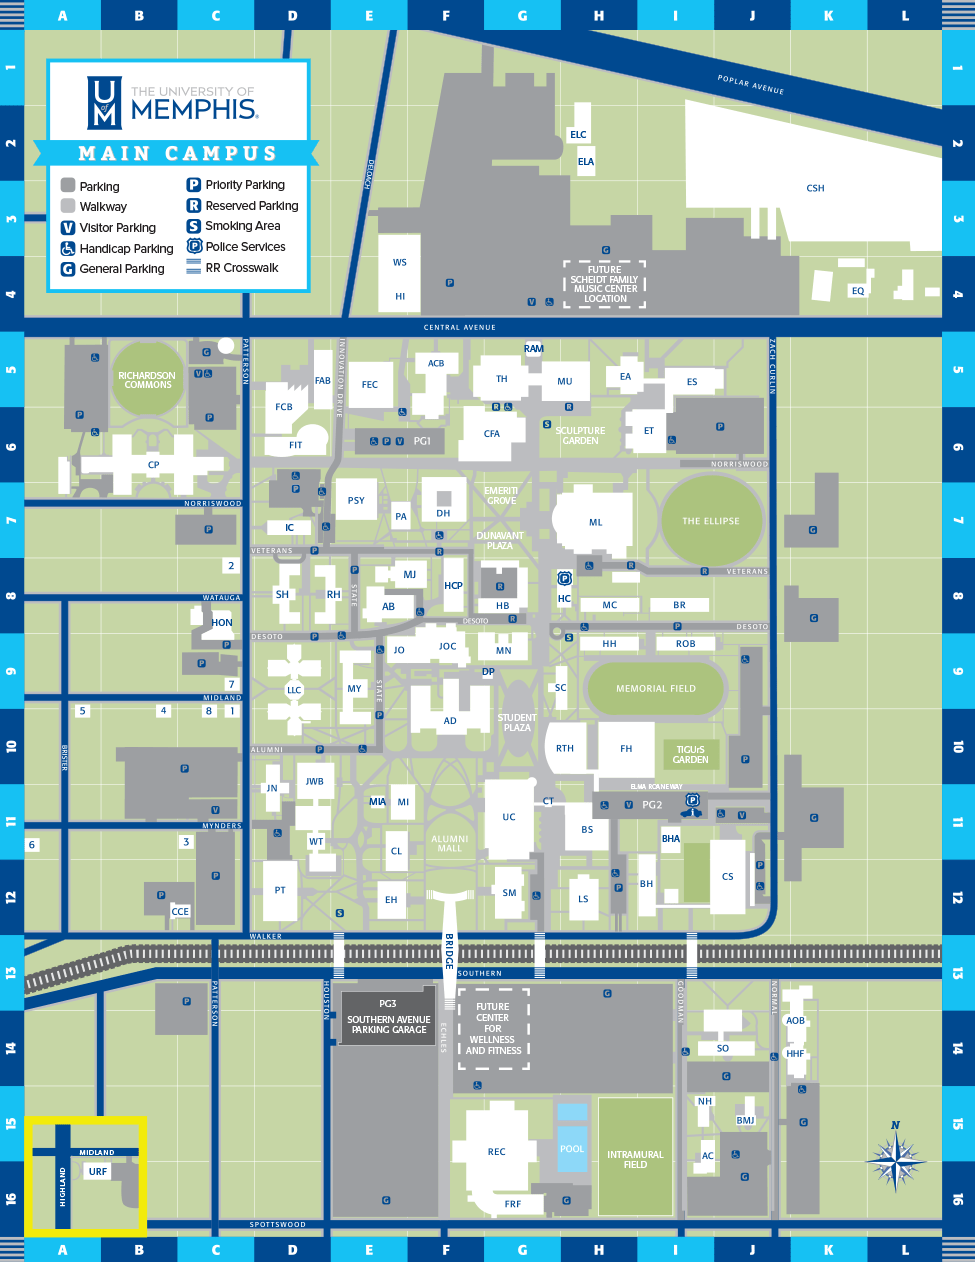 University Of Memphis Campus Map : university, memphis, campus, University, Memphis